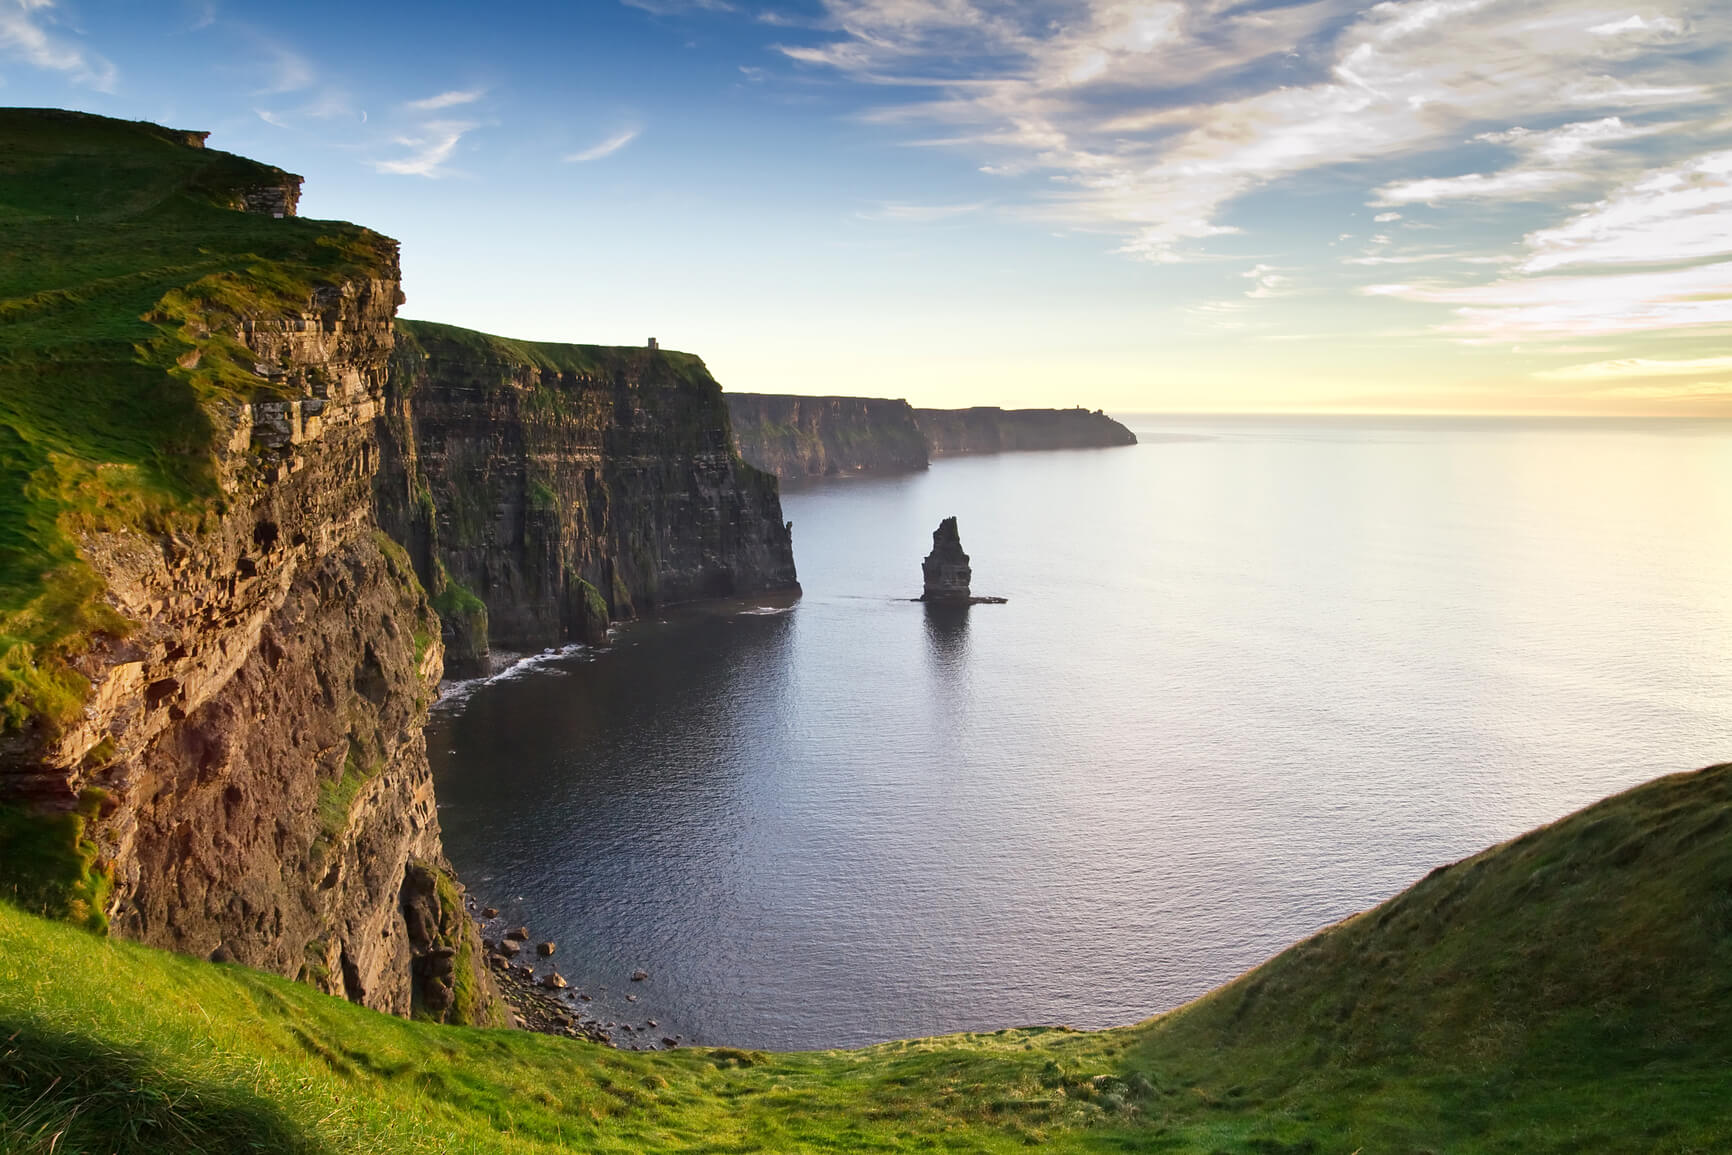 Cape Town, South Africa to Dublin, Ireland for only $444 USD roundtrip